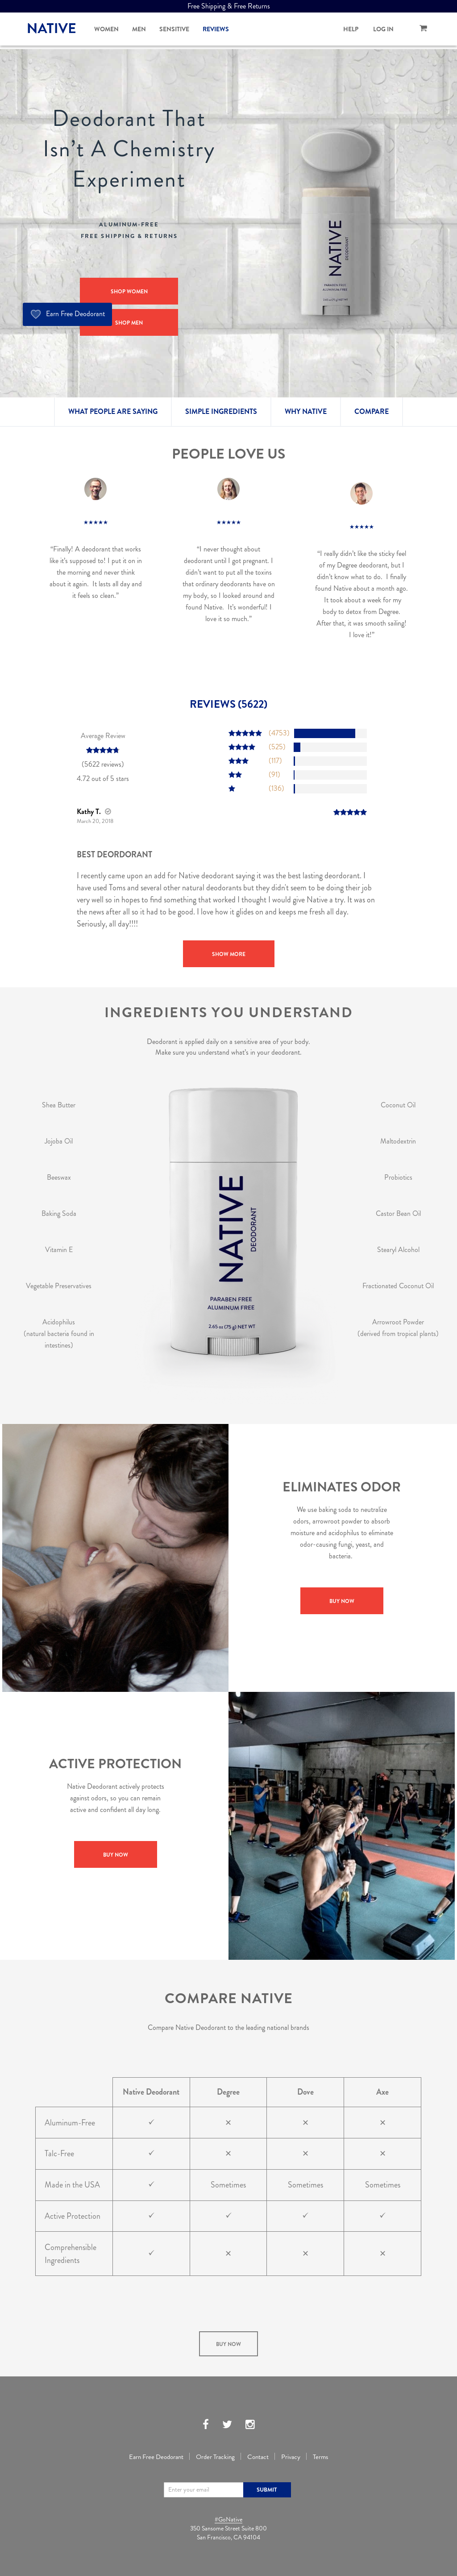 Native Deodorant Competitors, Revenue and Employees - Owler